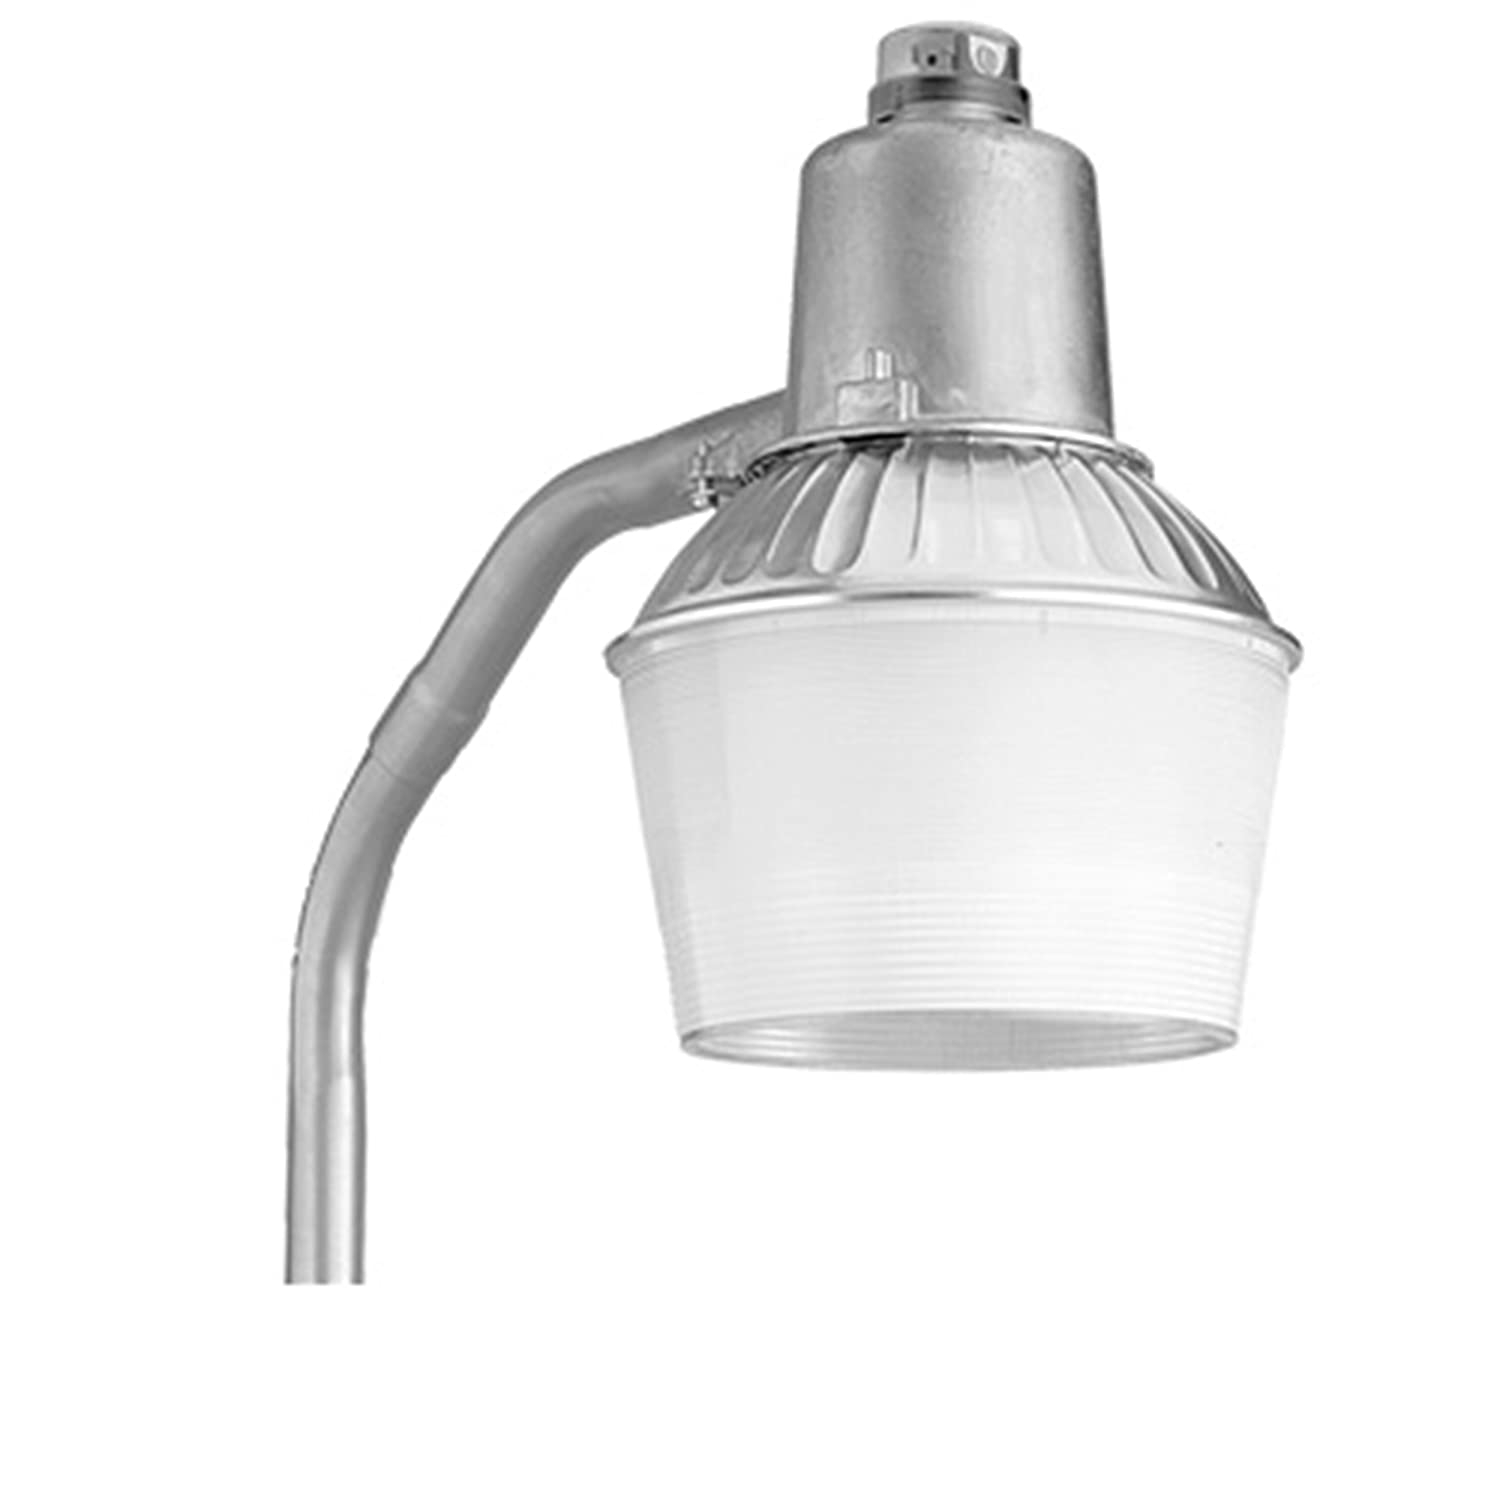 lithonia lighting tdd100ml 120 m2 100w metal halide outdoor area